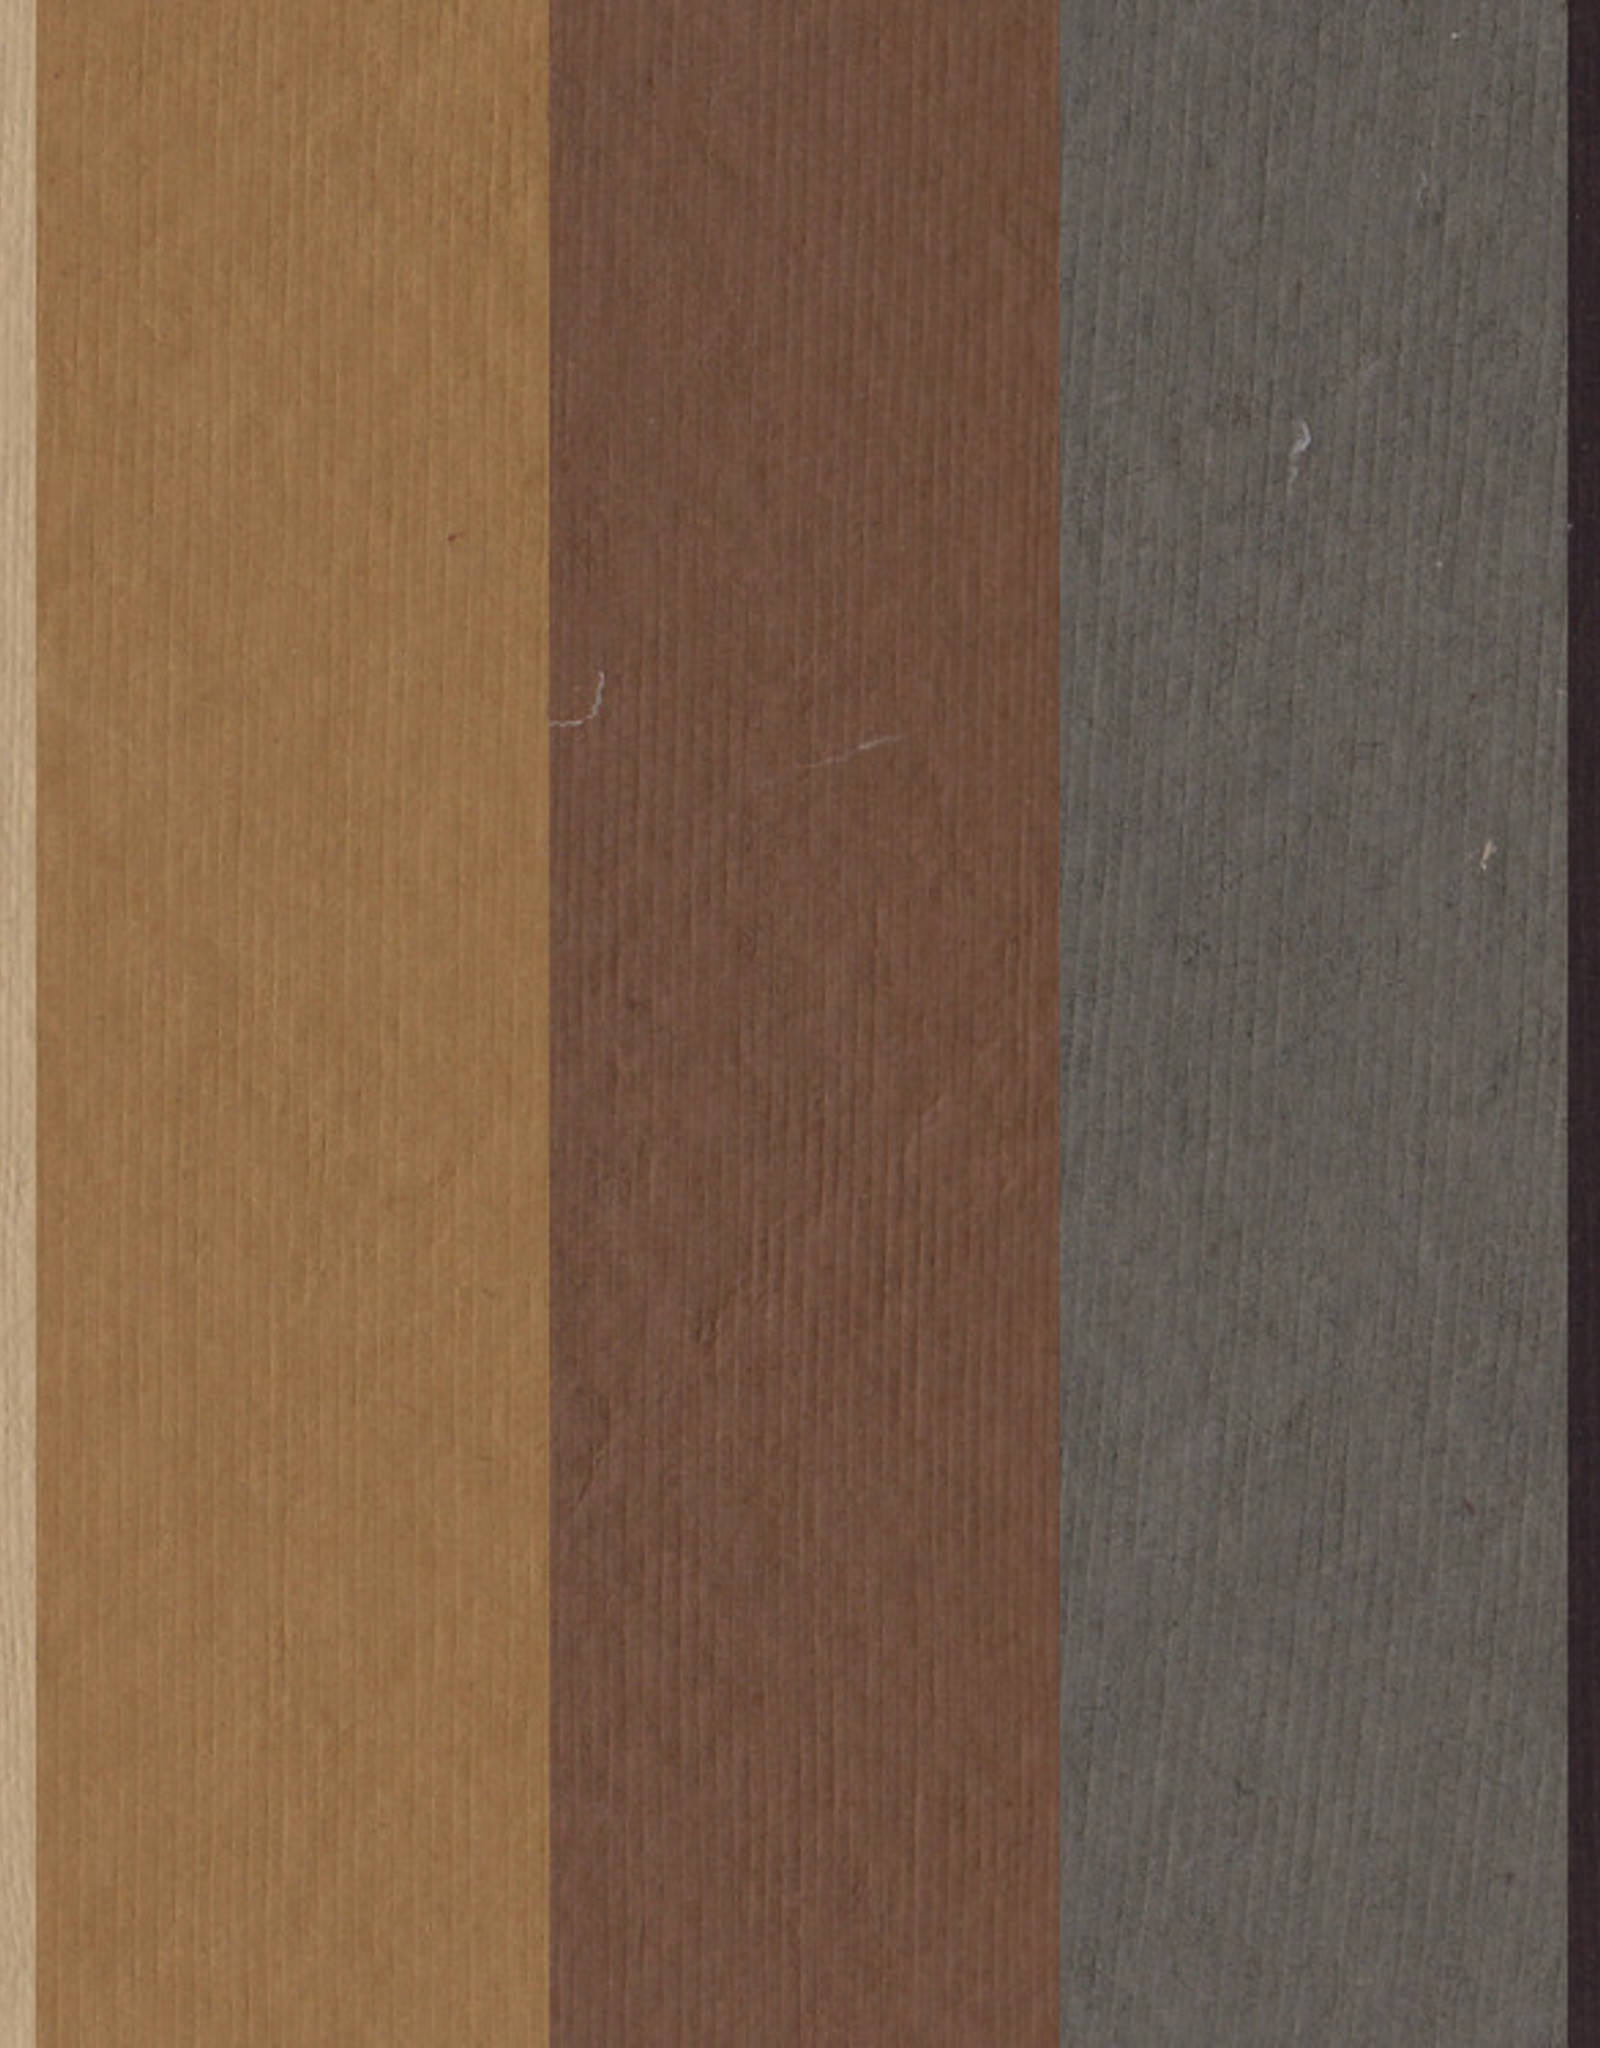 """Pastel Paper Multi-Natural Pack, 9"""" x 12"""", 25 Sheets, 5 Sheets of Each Color"""